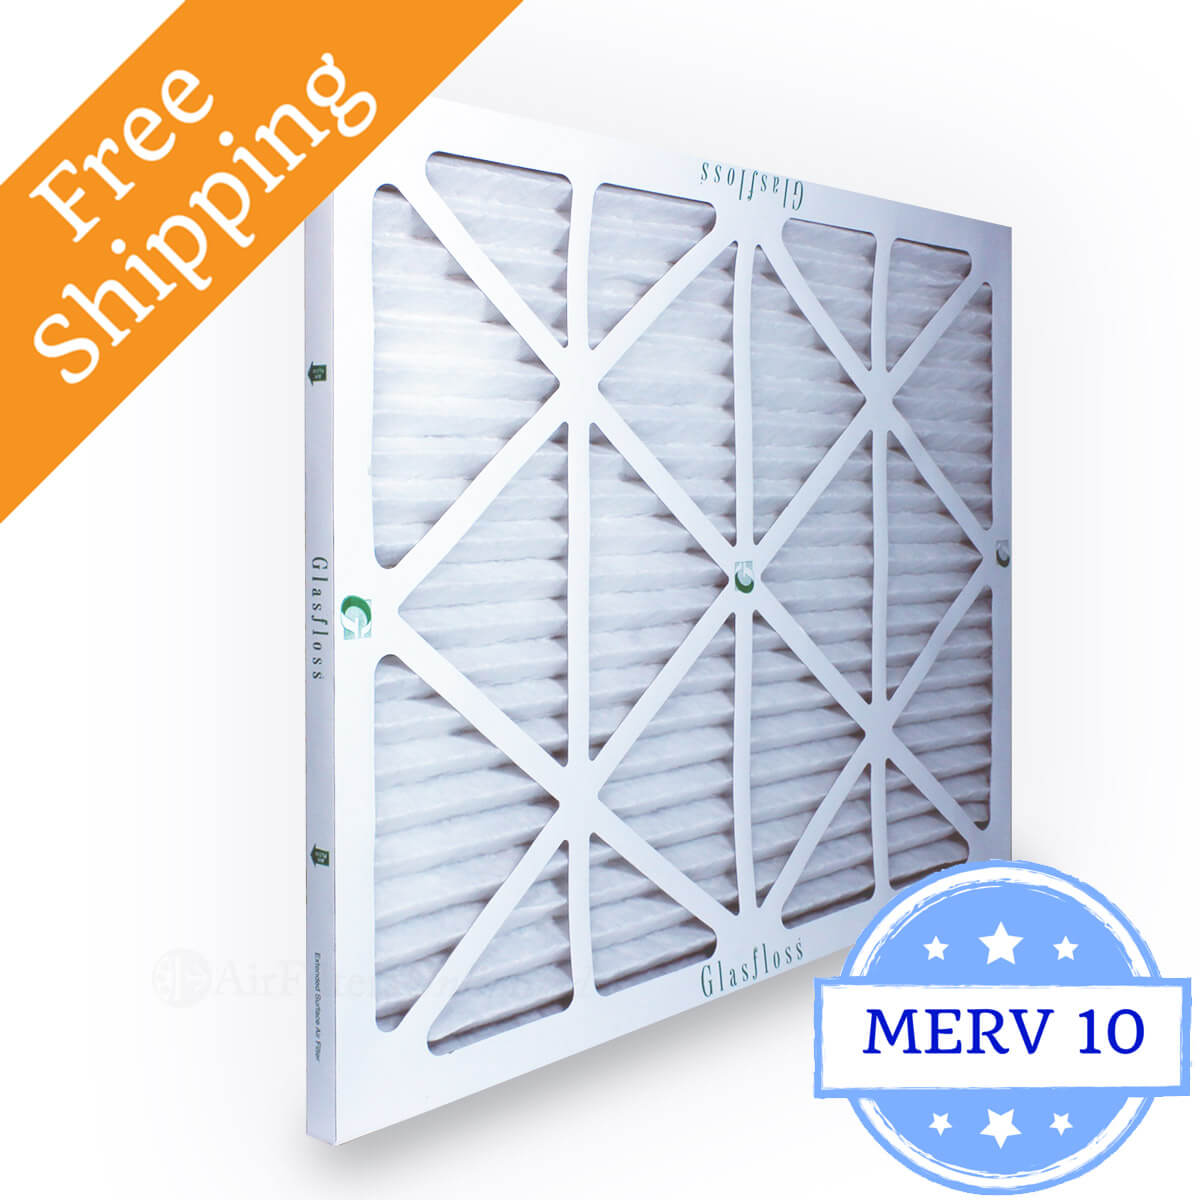 Glasfloss 12x30x1 Air Filter ZL Series